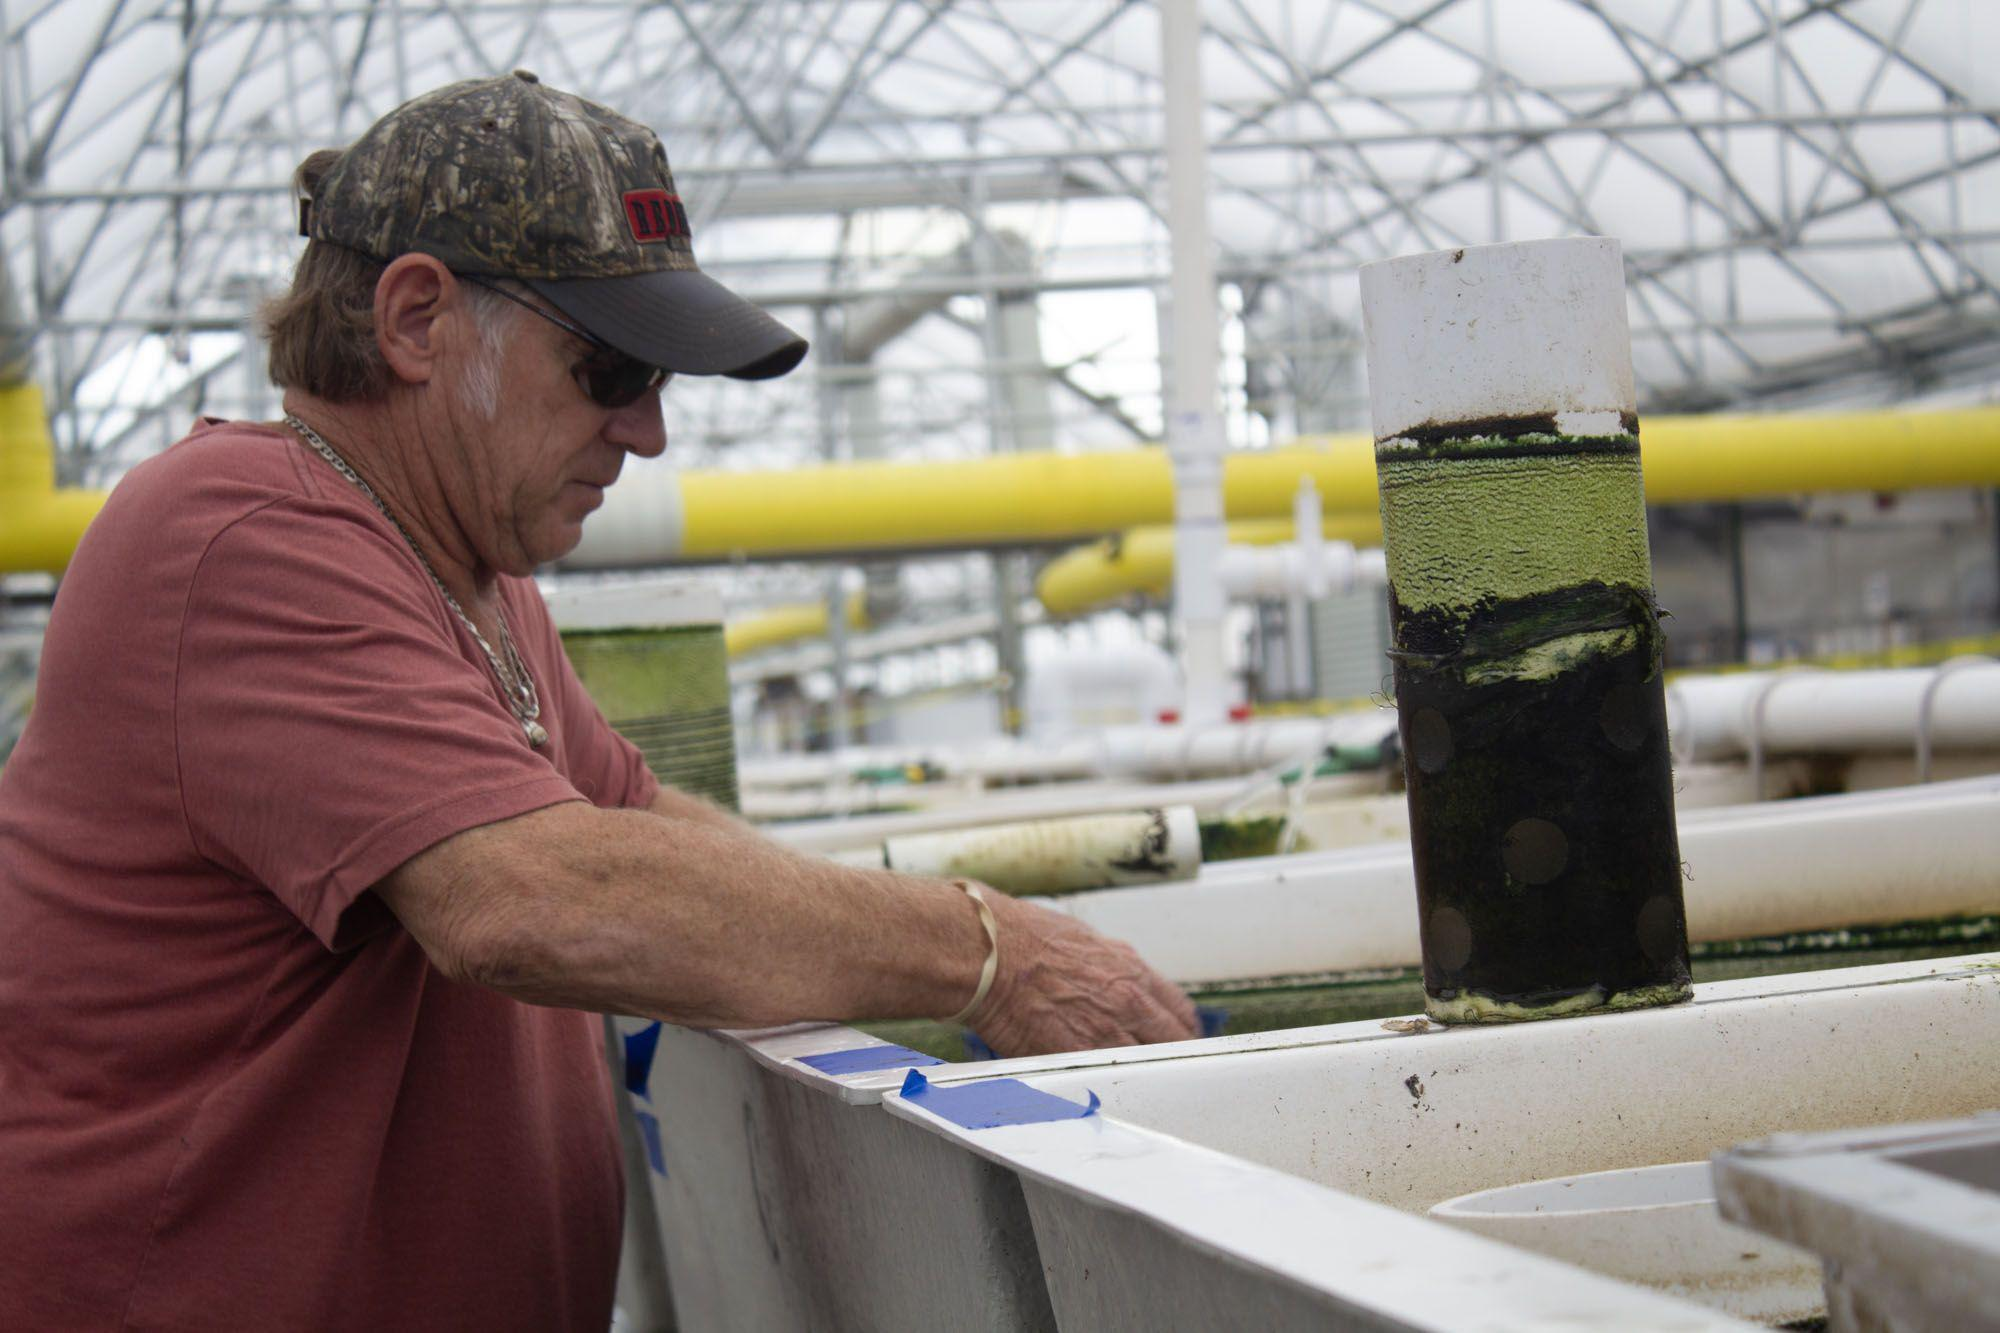 Dave Block standing at at tank, in an aquaculture facility, with hands in the tank.